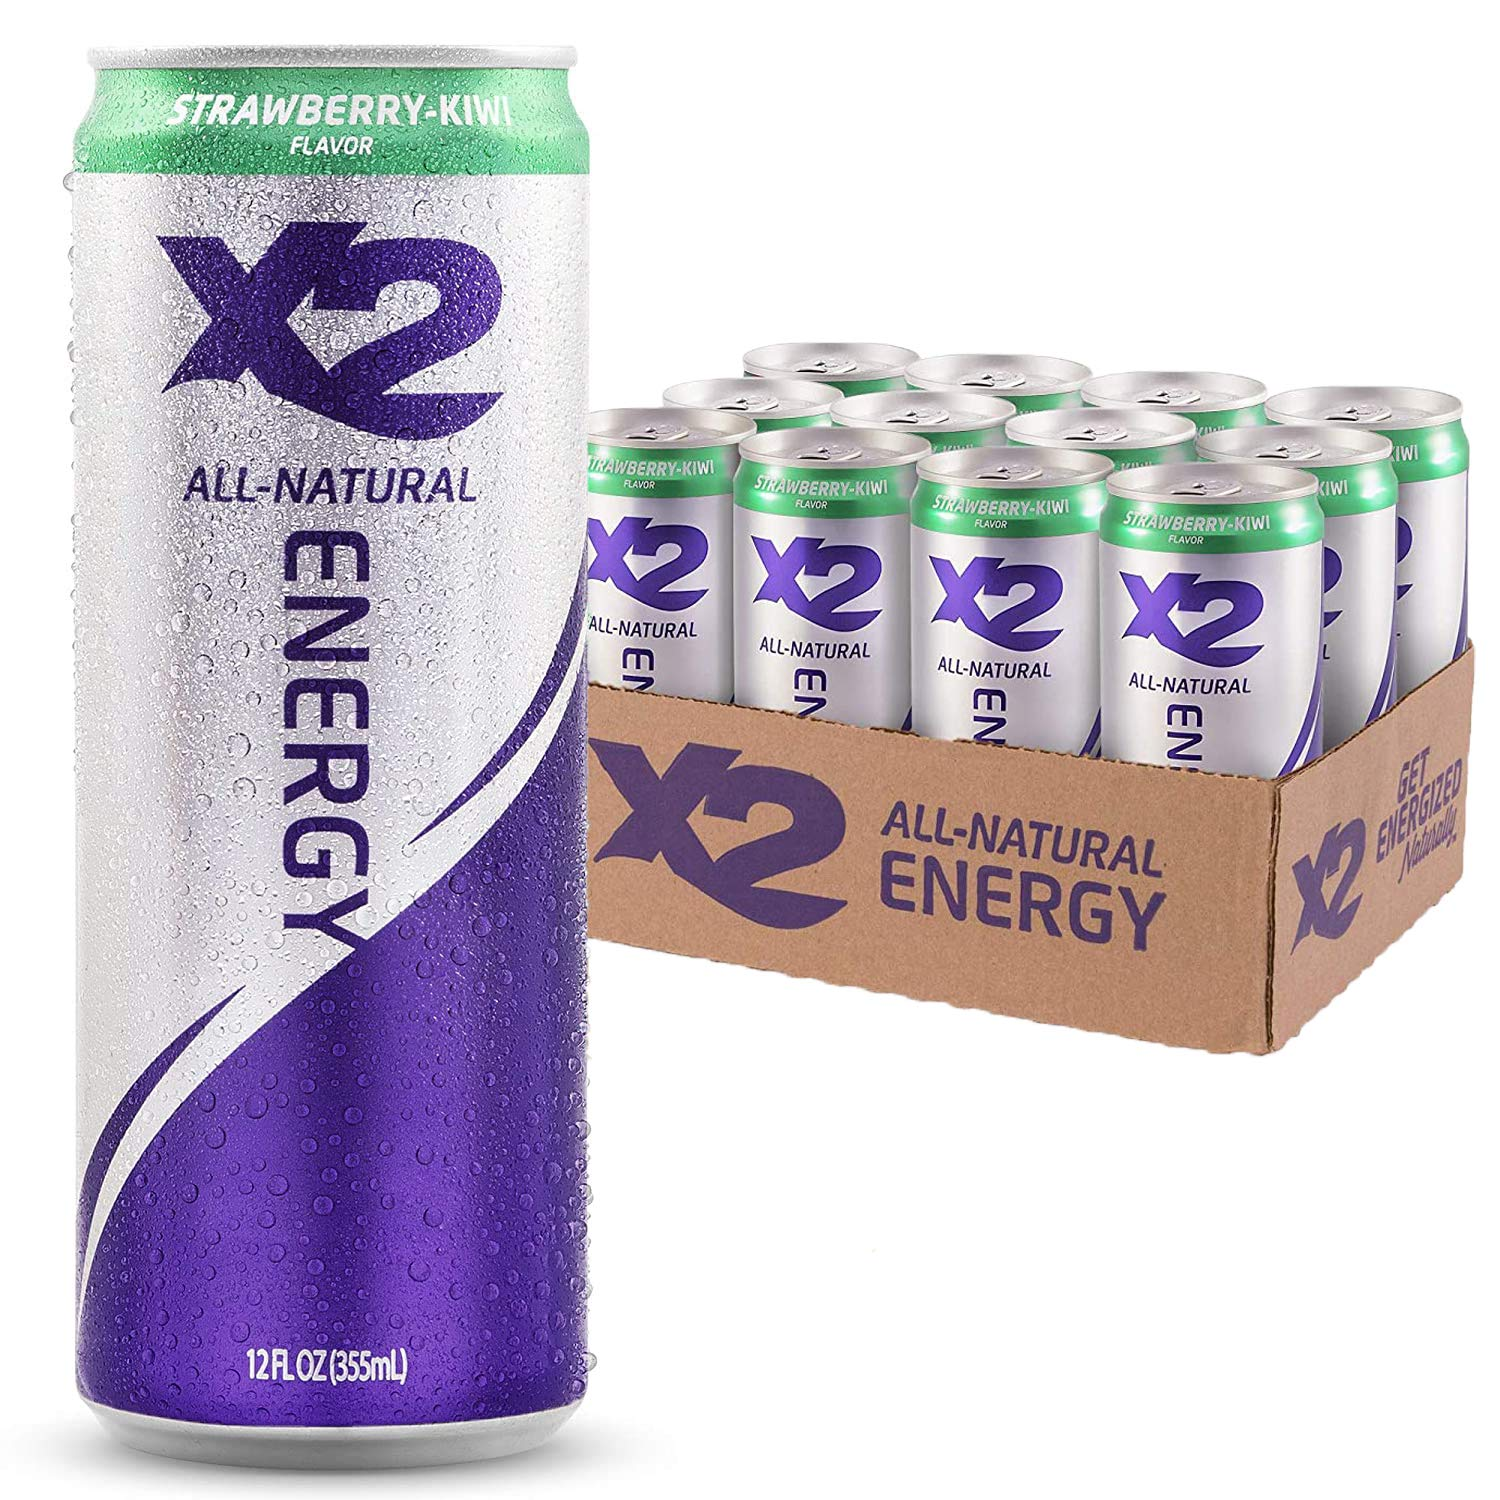 X2 Strawberry Kiwi All Natural Healthy Energy Drink,12 fl.oz. (Pack of 12)